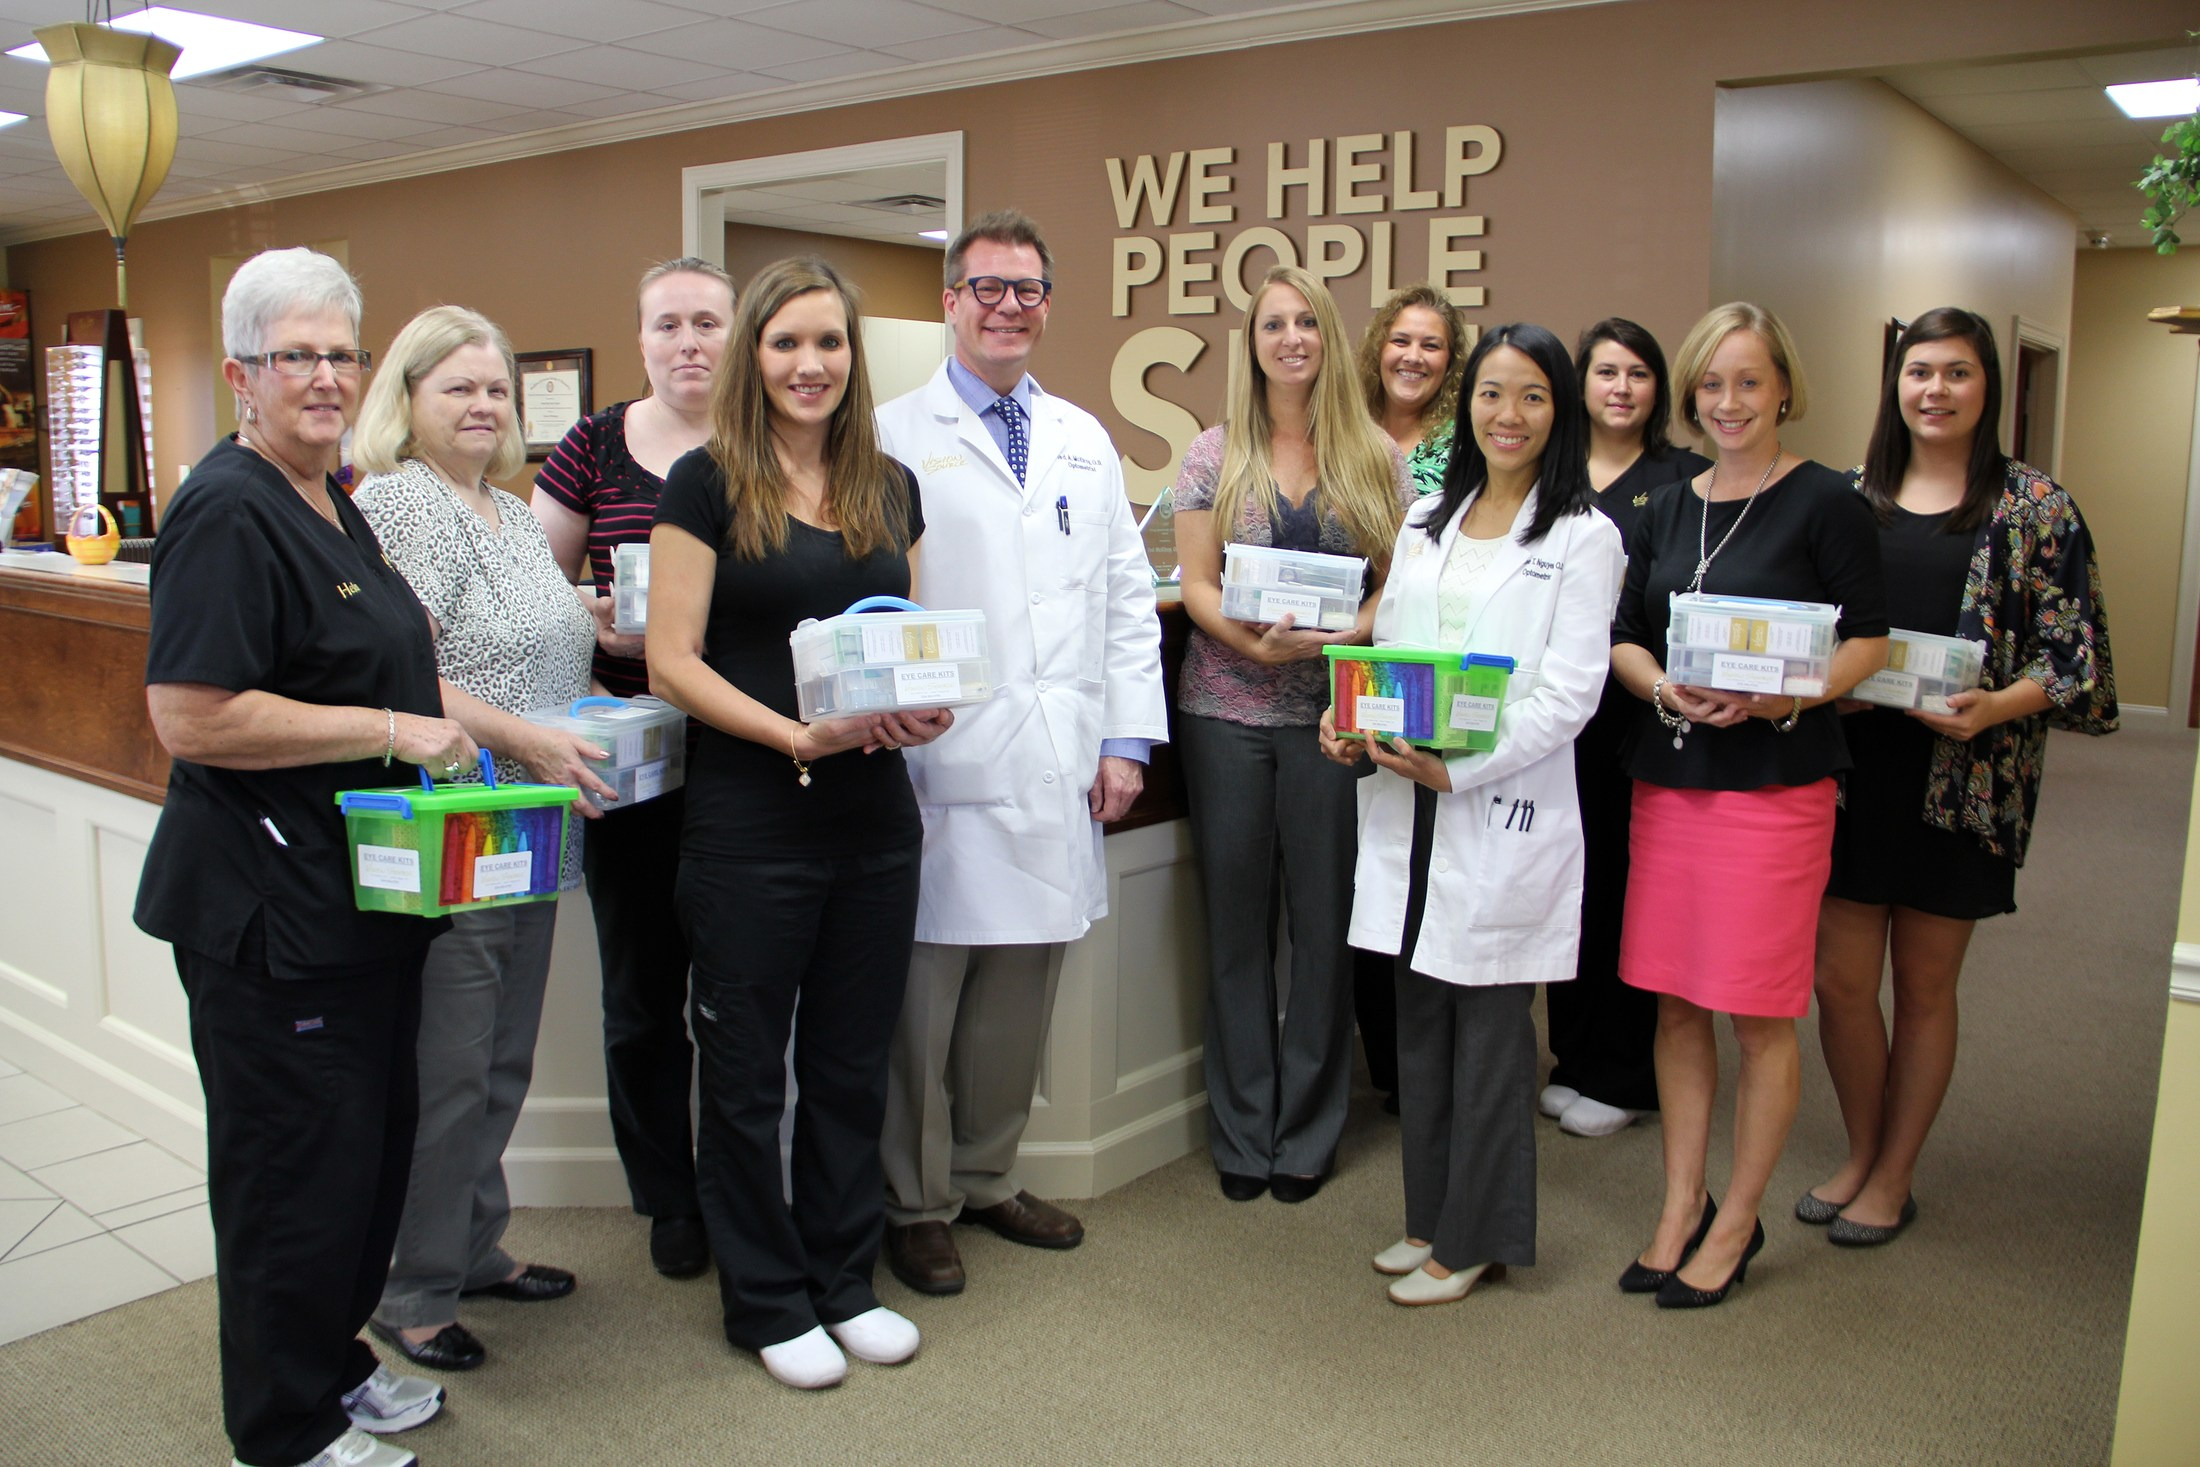 Staff with donated eye care kits